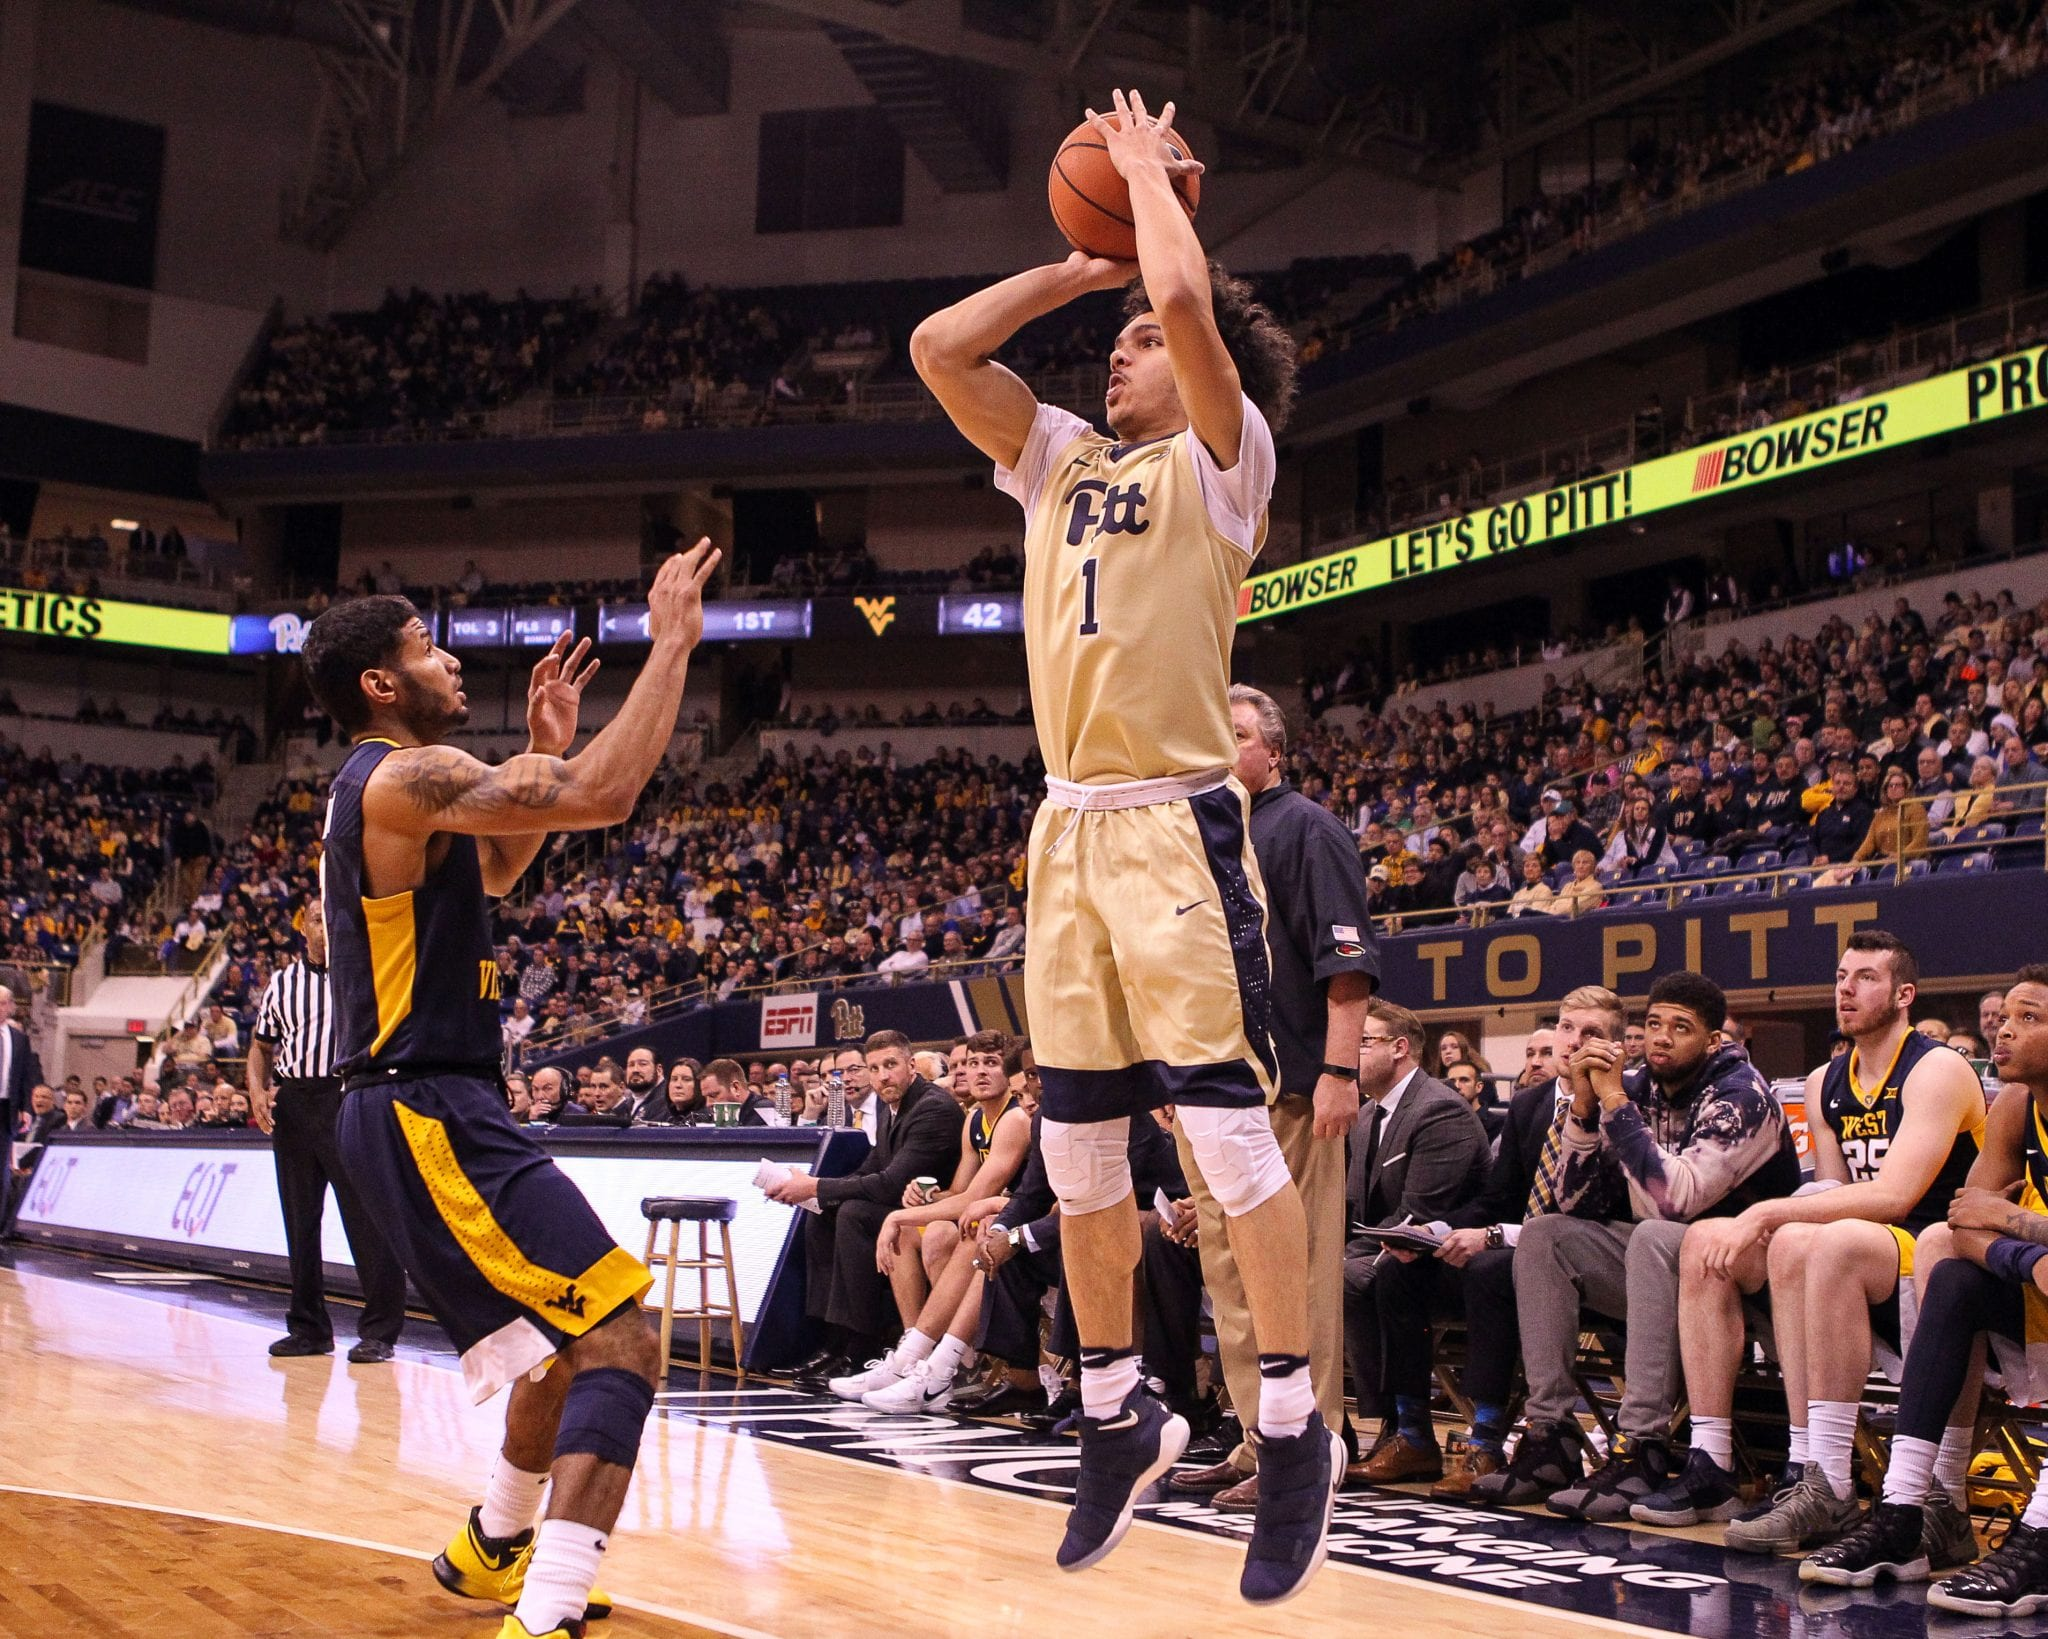 Parker Stewart (1) takes a 3 point shot as the Pitt Panthers take on West Virginia on December 9, 2017 -- DAVID HAGUE